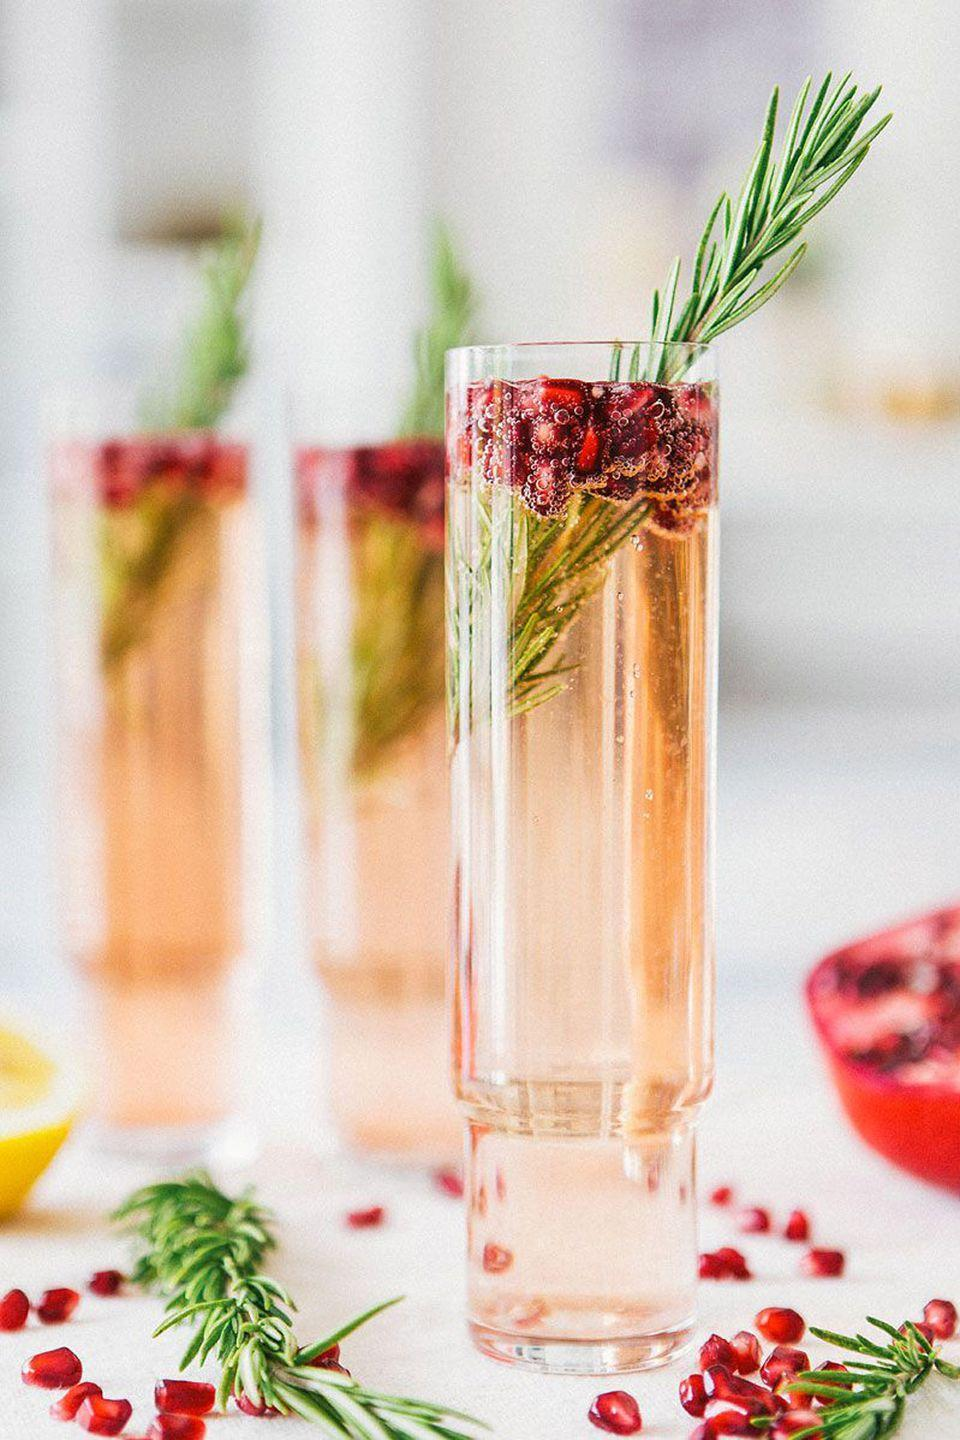 """<p>For an adults-only soiree, host a holiday happy hour. Even if you're not an expert bartender, you can still make gorgeous seasonal drinks—like this <a href=""""http://ahouseinthehills.com/2014/11/04/pomegranate-rosemary-spritzer/"""" rel=""""nofollow noopener"""" target=""""_blank"""" data-ylk=""""slk:pomegranate rosemary spritzer"""" class=""""link rapid-noclick-resp"""">pomegranate rosemary spritzer</a>—with our <a href=""""https://www.countryliving.com/food-drinks/g2768/christmas-cocktails/"""" rel=""""nofollow noopener"""" target=""""_blank"""" data-ylk=""""slk:easy Christmas cocktails recipes"""" class=""""link rapid-noclick-resp"""">easy Christmas cocktails recipes</a> .</p>"""